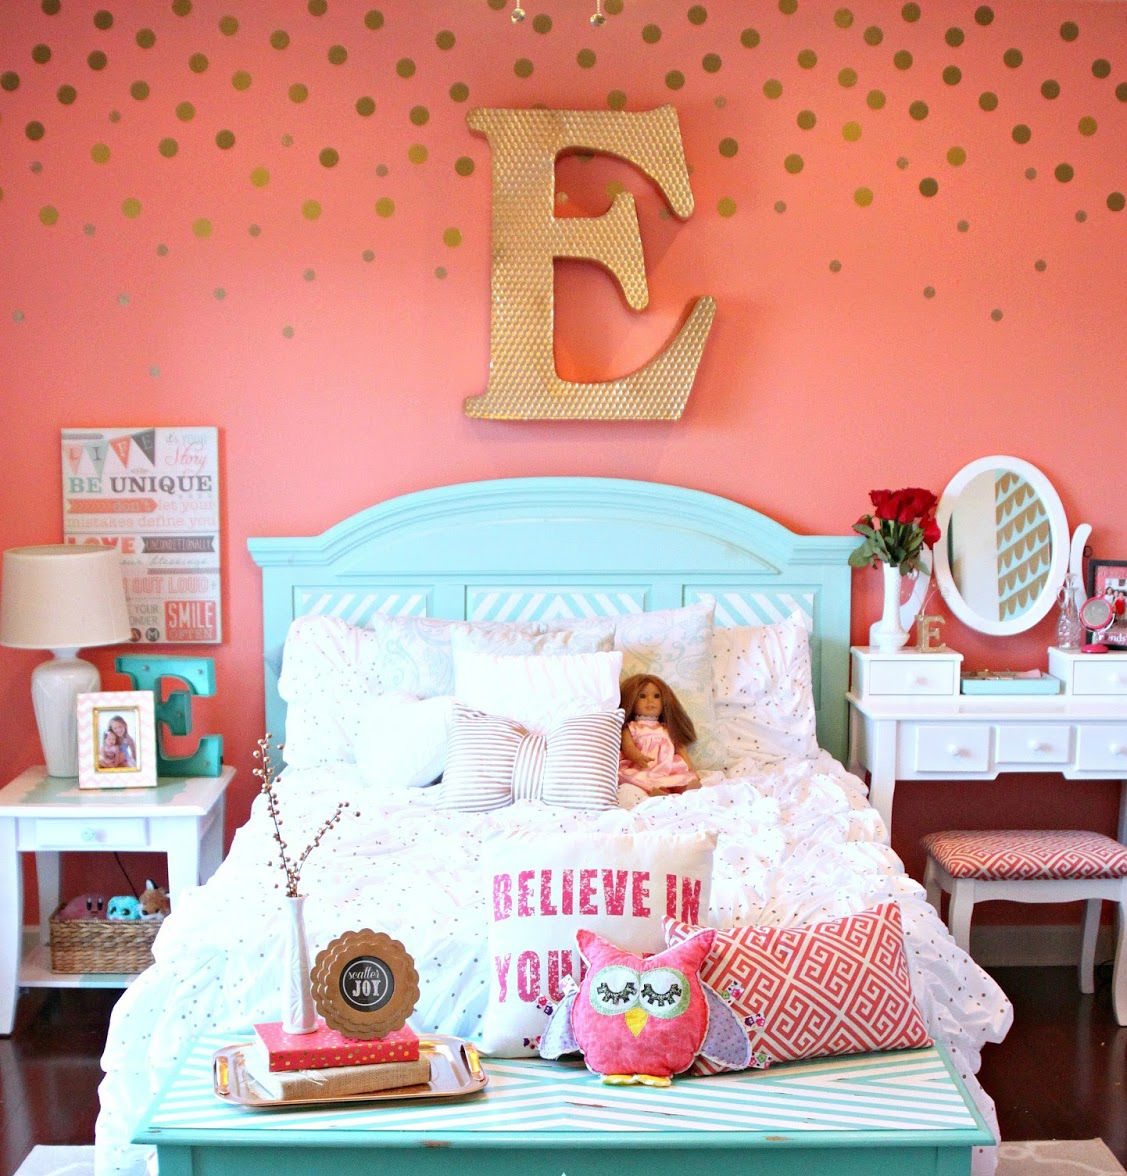 548c537e394 24 Wall Decor Ideas for Girls  Rooms